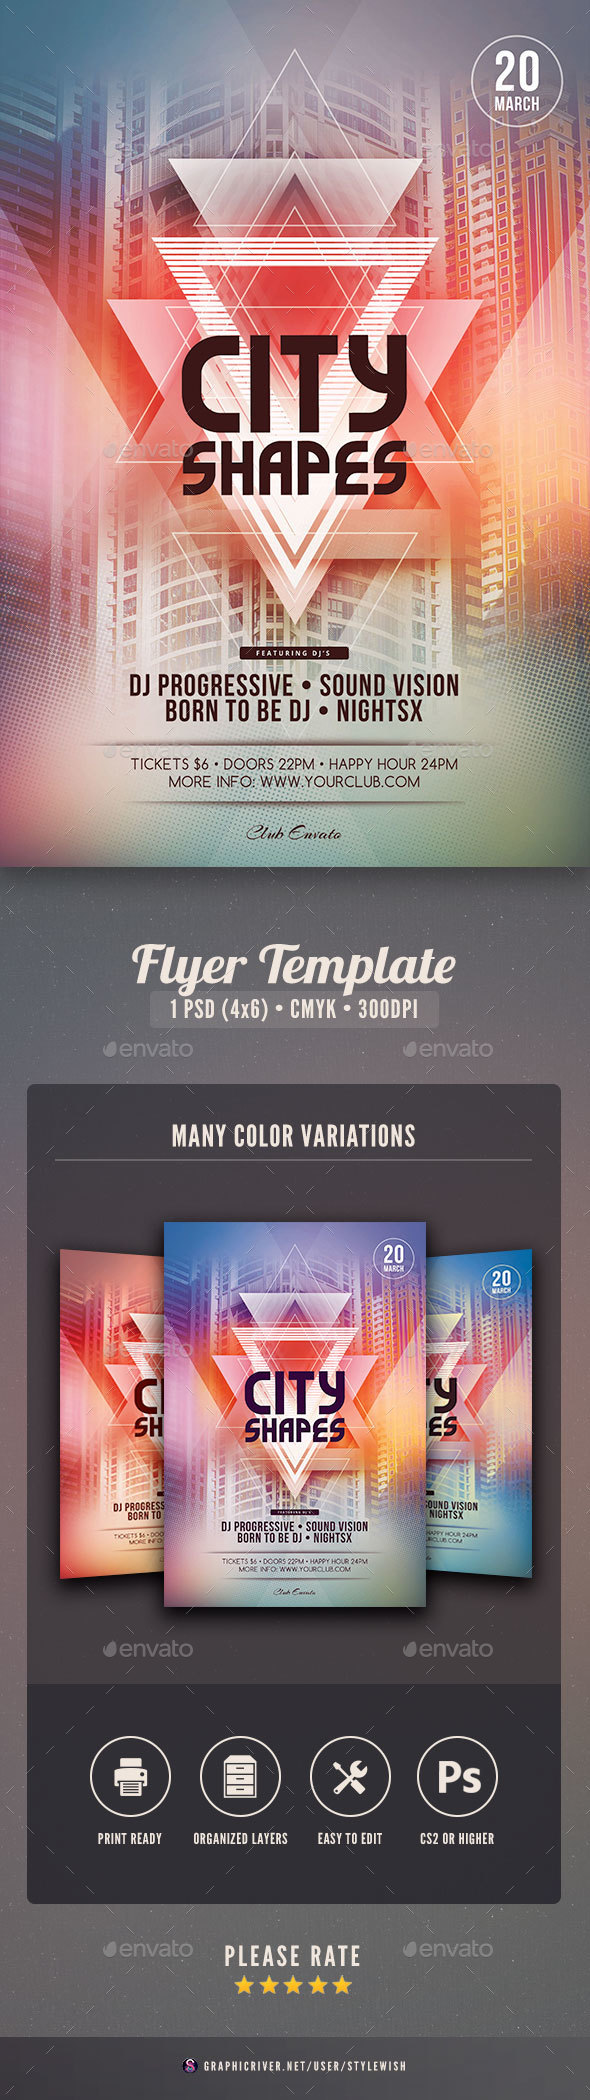 City Shapes Flyer Template - Clubs & Parties Events